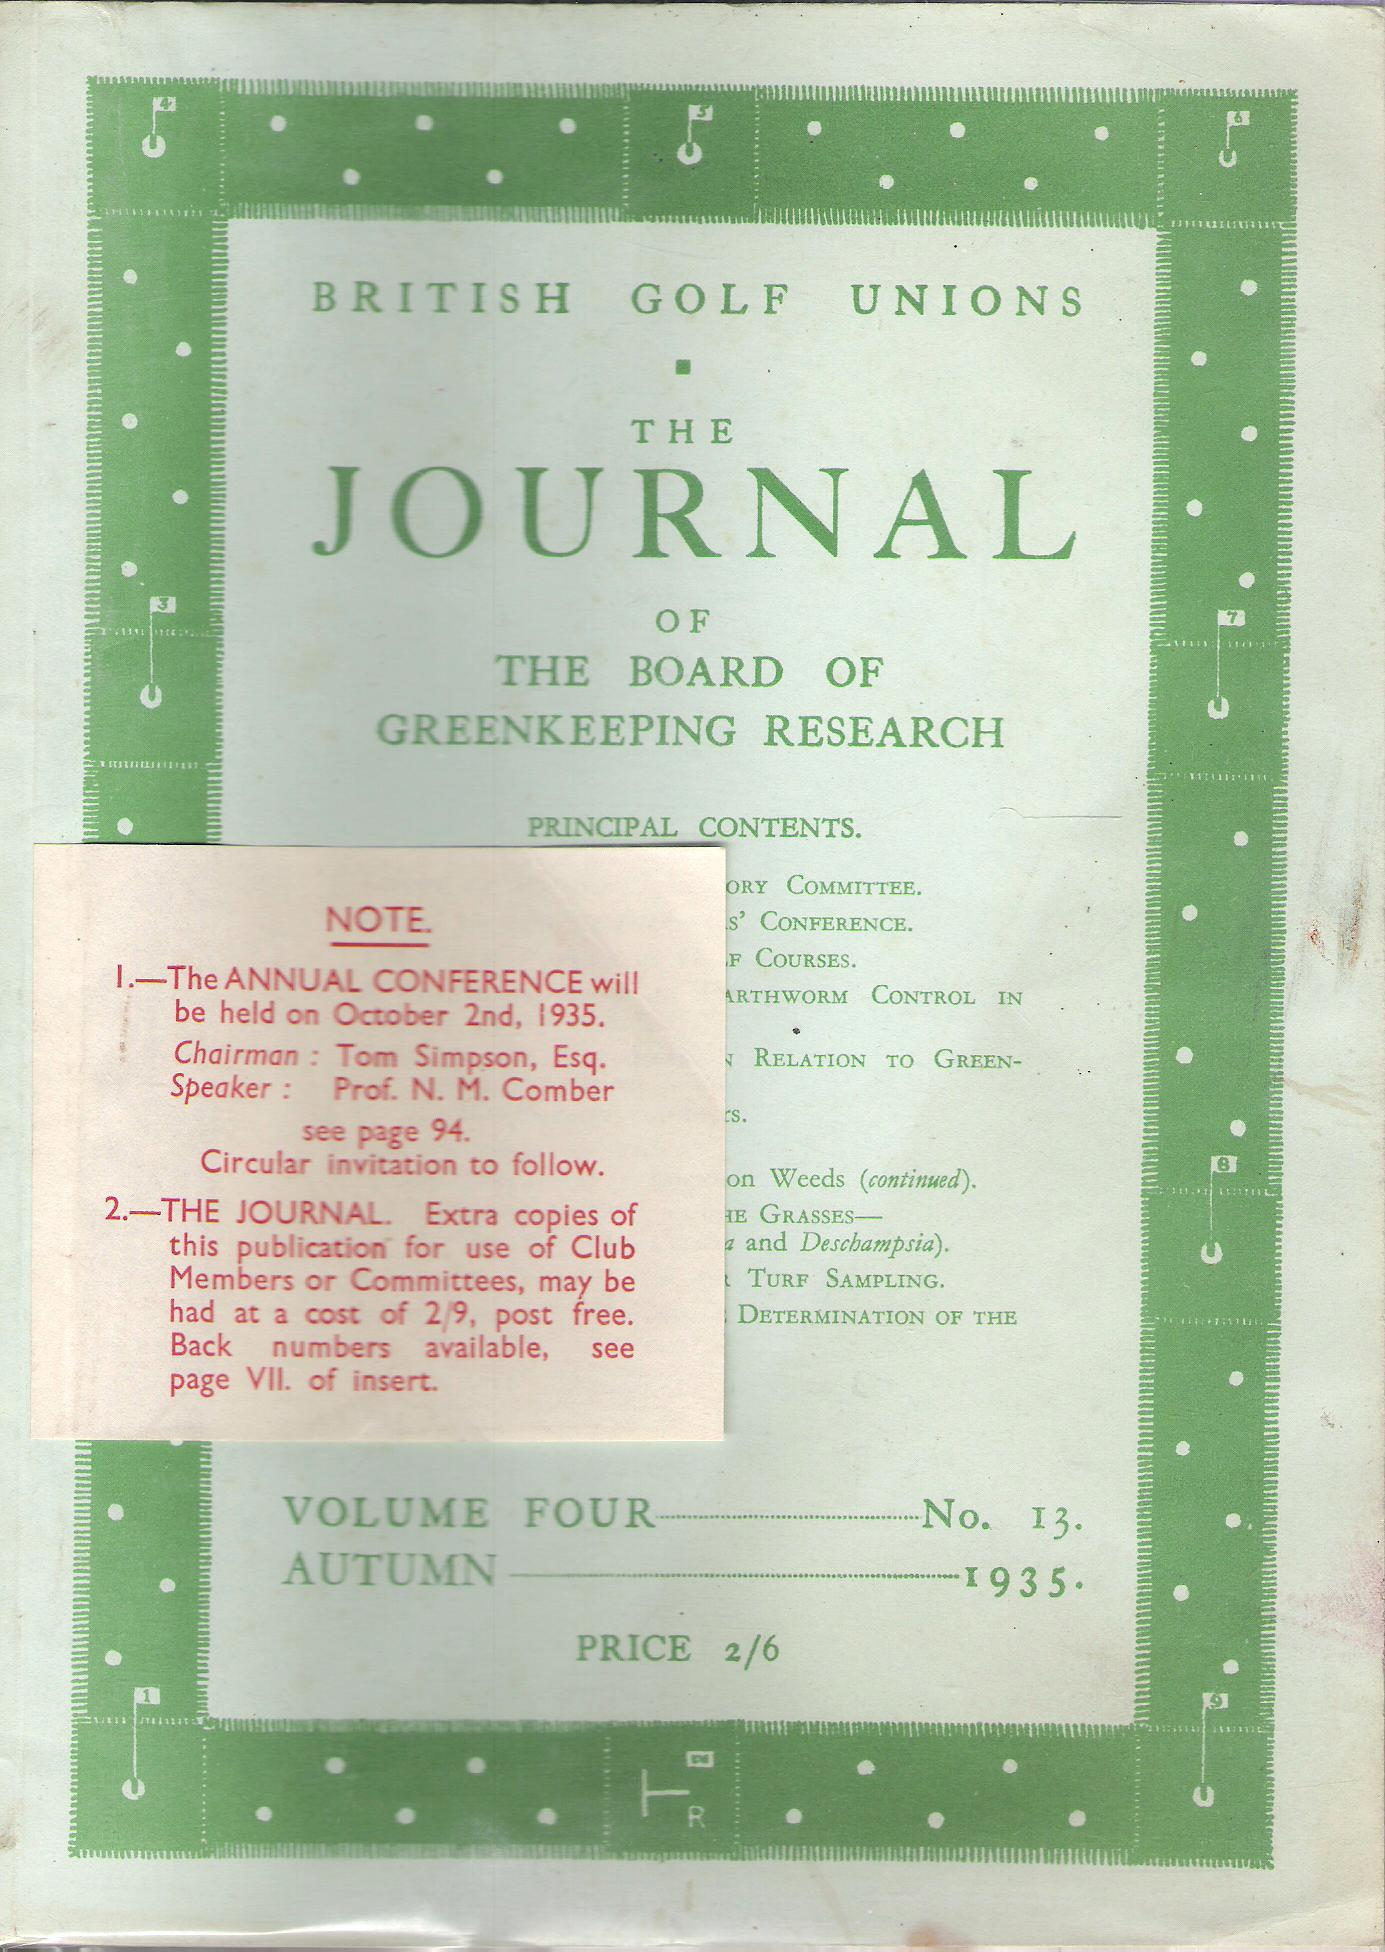 Image for British Golf Unions: The Journal of the Board of Greenkeeping Research, Volume IV, number 13.